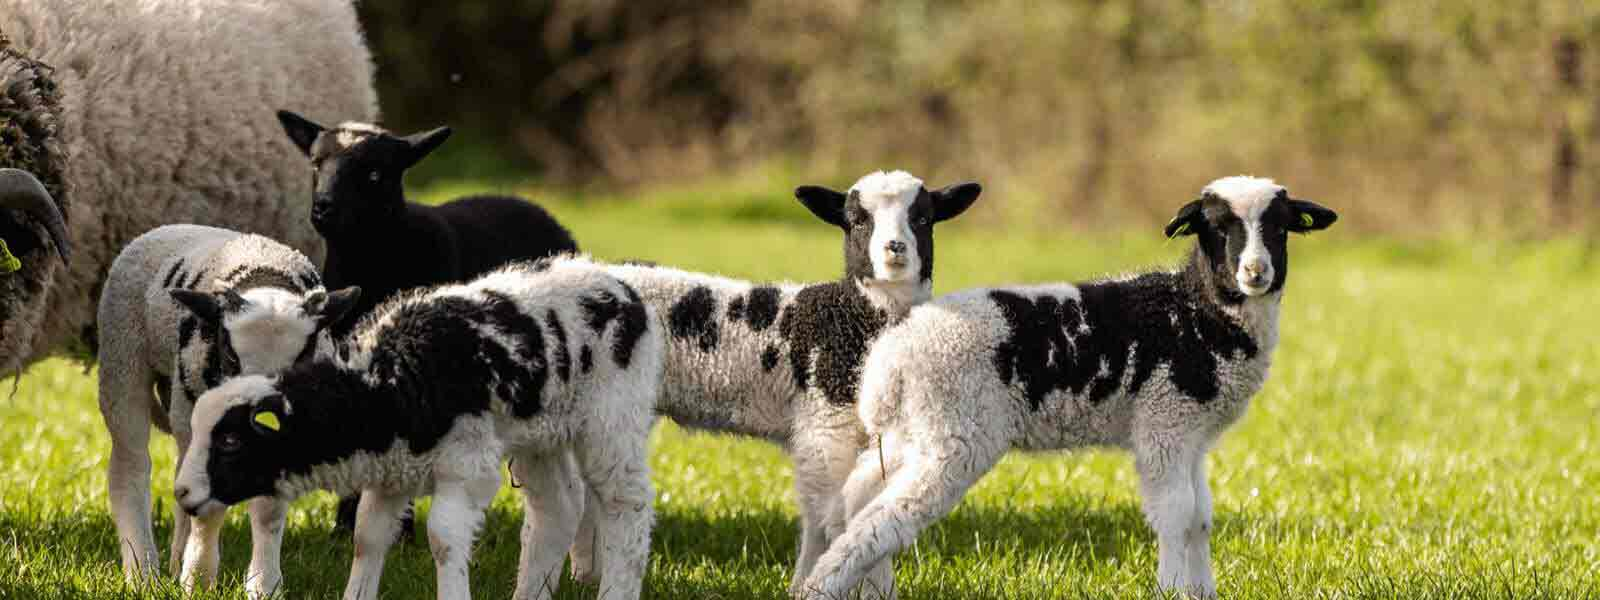 https://www.airfield.ie/wp-content/uploads/2021/05/Jacob-Lambs-at-Airfield-Estate-1-2.jpg